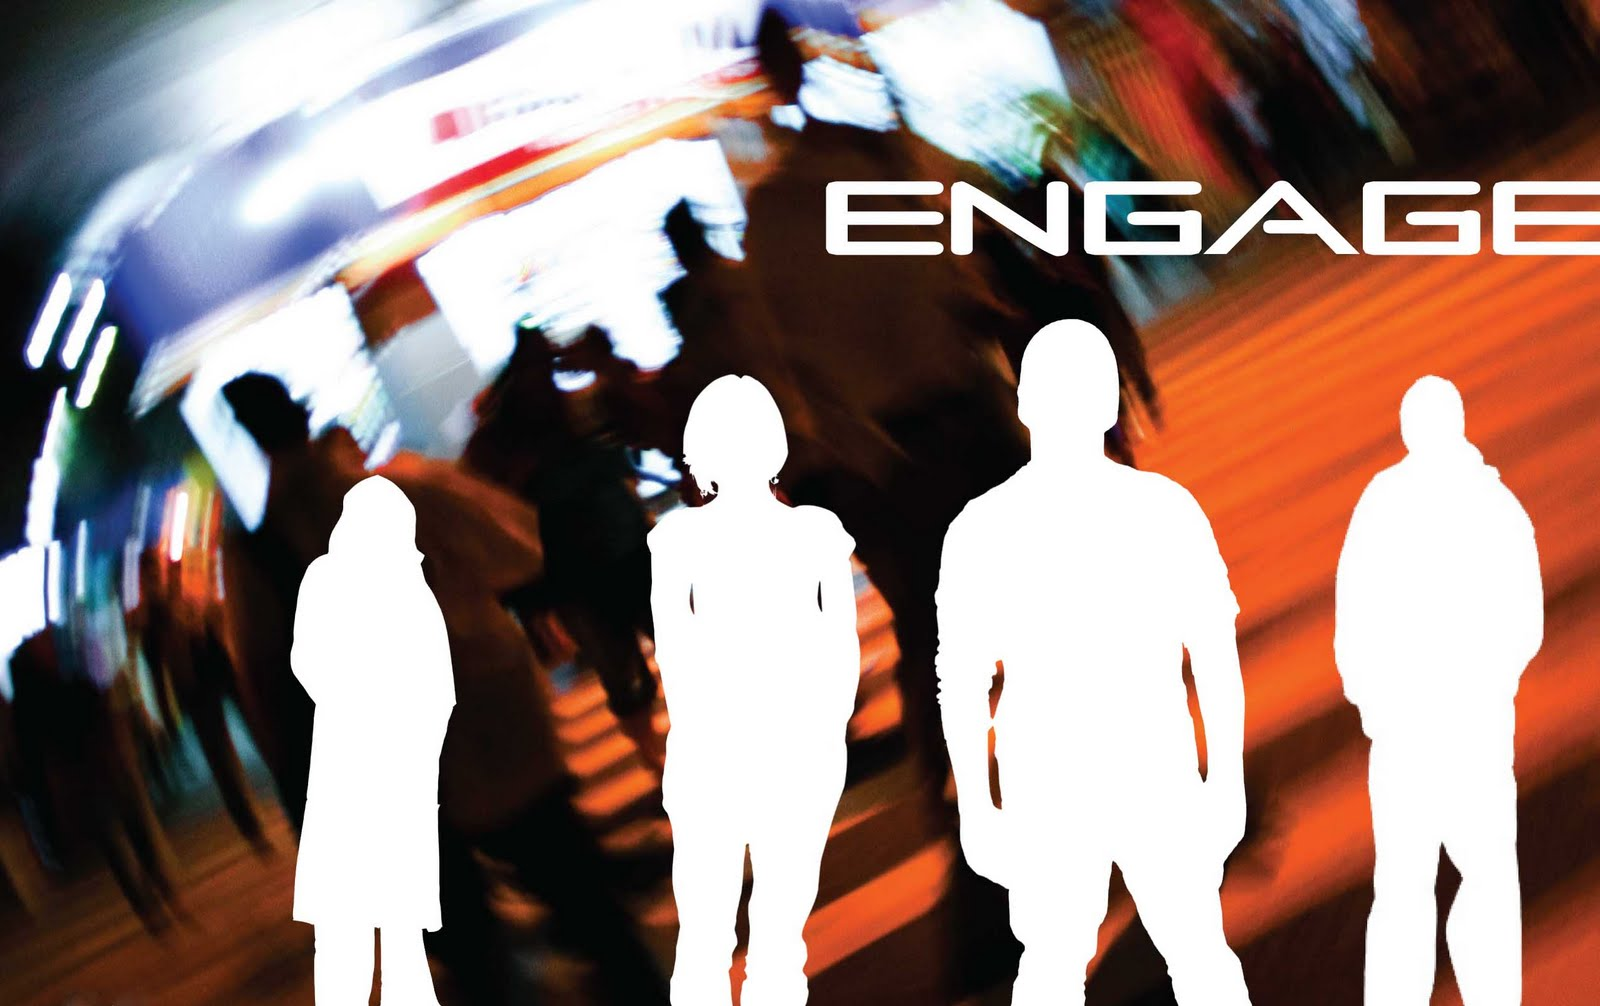 ENGAGE: The Online Community